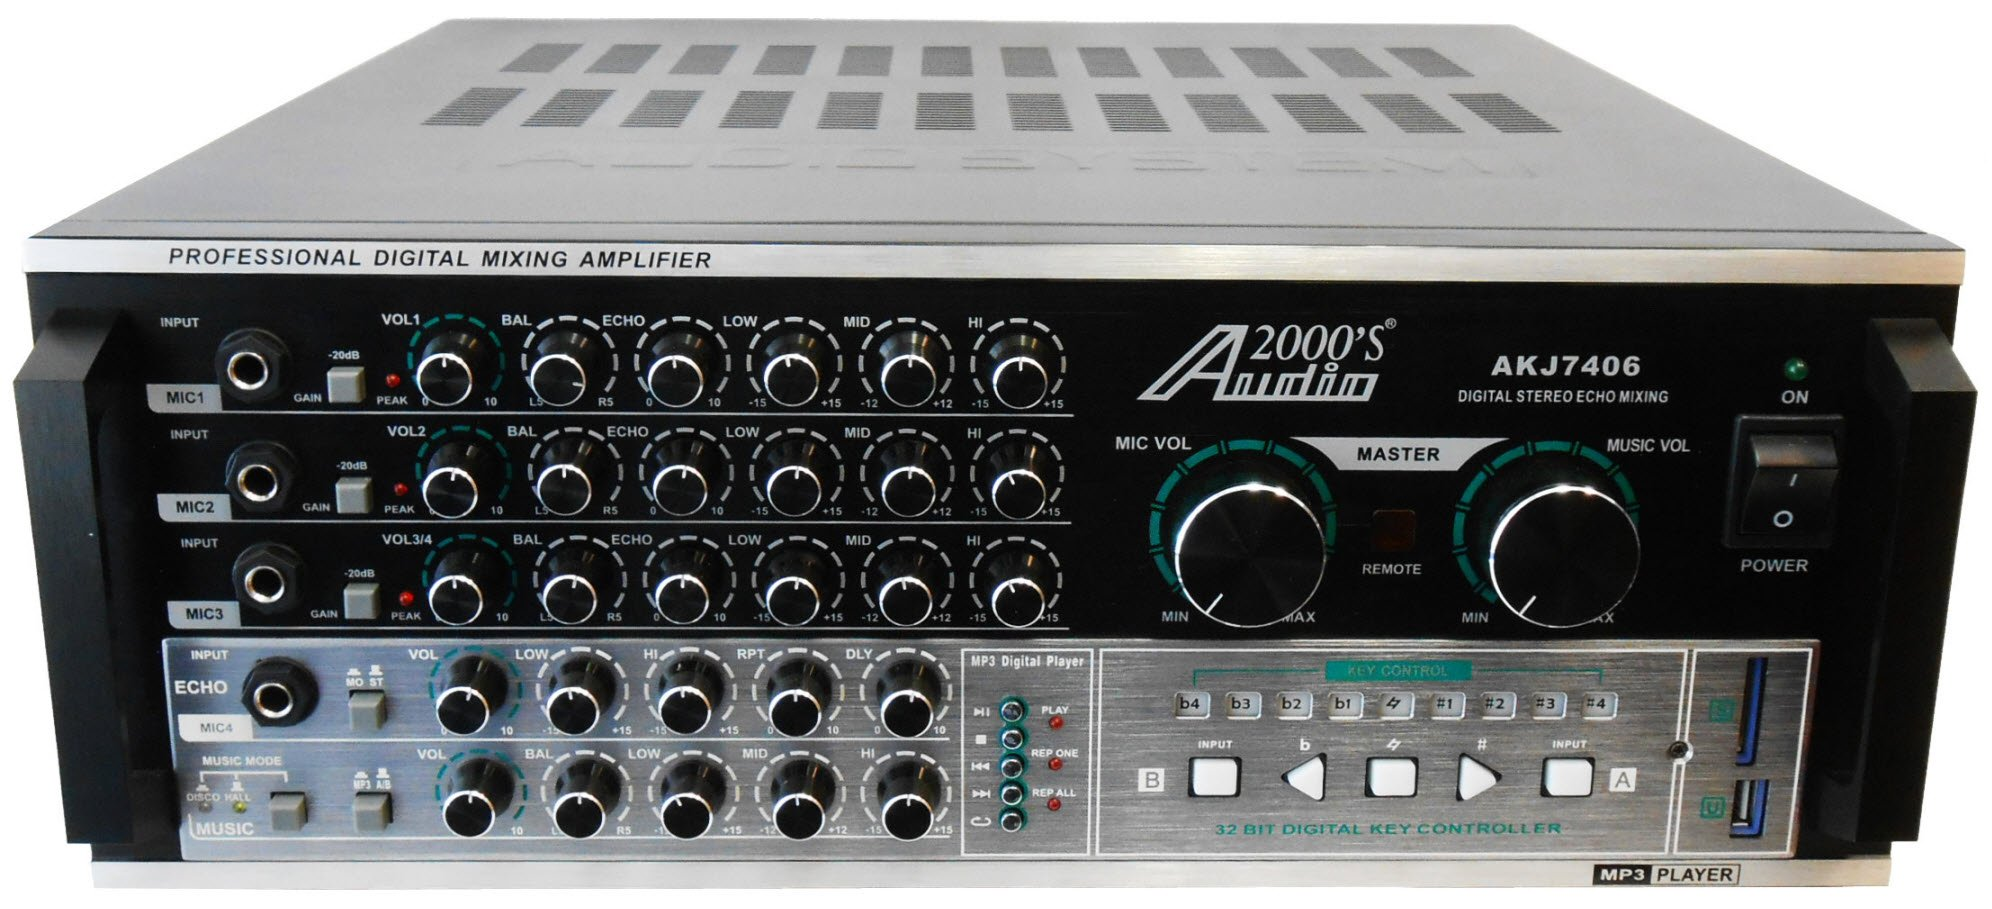 Audio2000'S AKJ7406 Professional Mixing Amplifier with Digital Echo & Key Control, 1000W